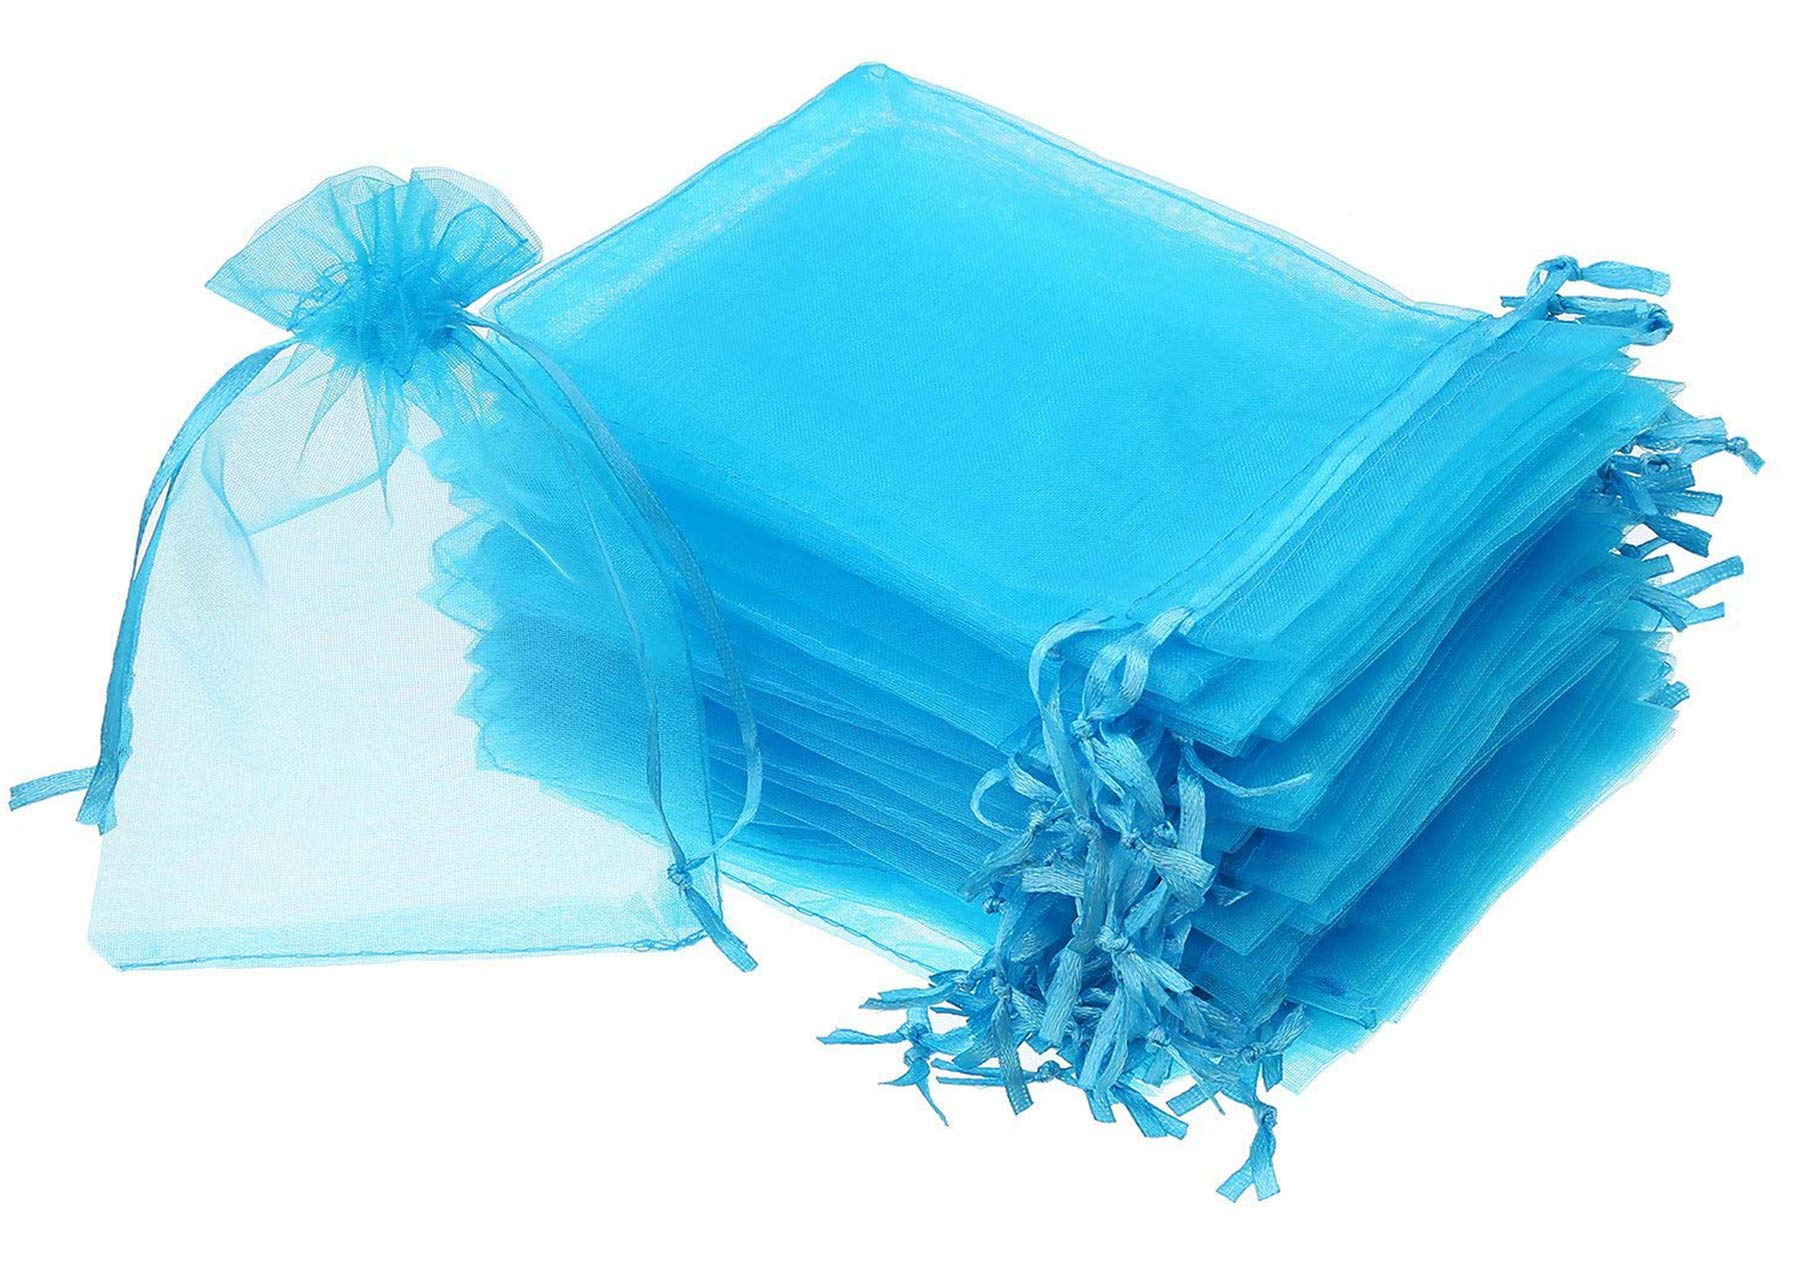 Wukong 100PCS 6x9 Inch(16x22cm) Drawstring Organza Jewelry Favor Pouches Wedding Party Festival Gift Bags Candy Bags-Blue